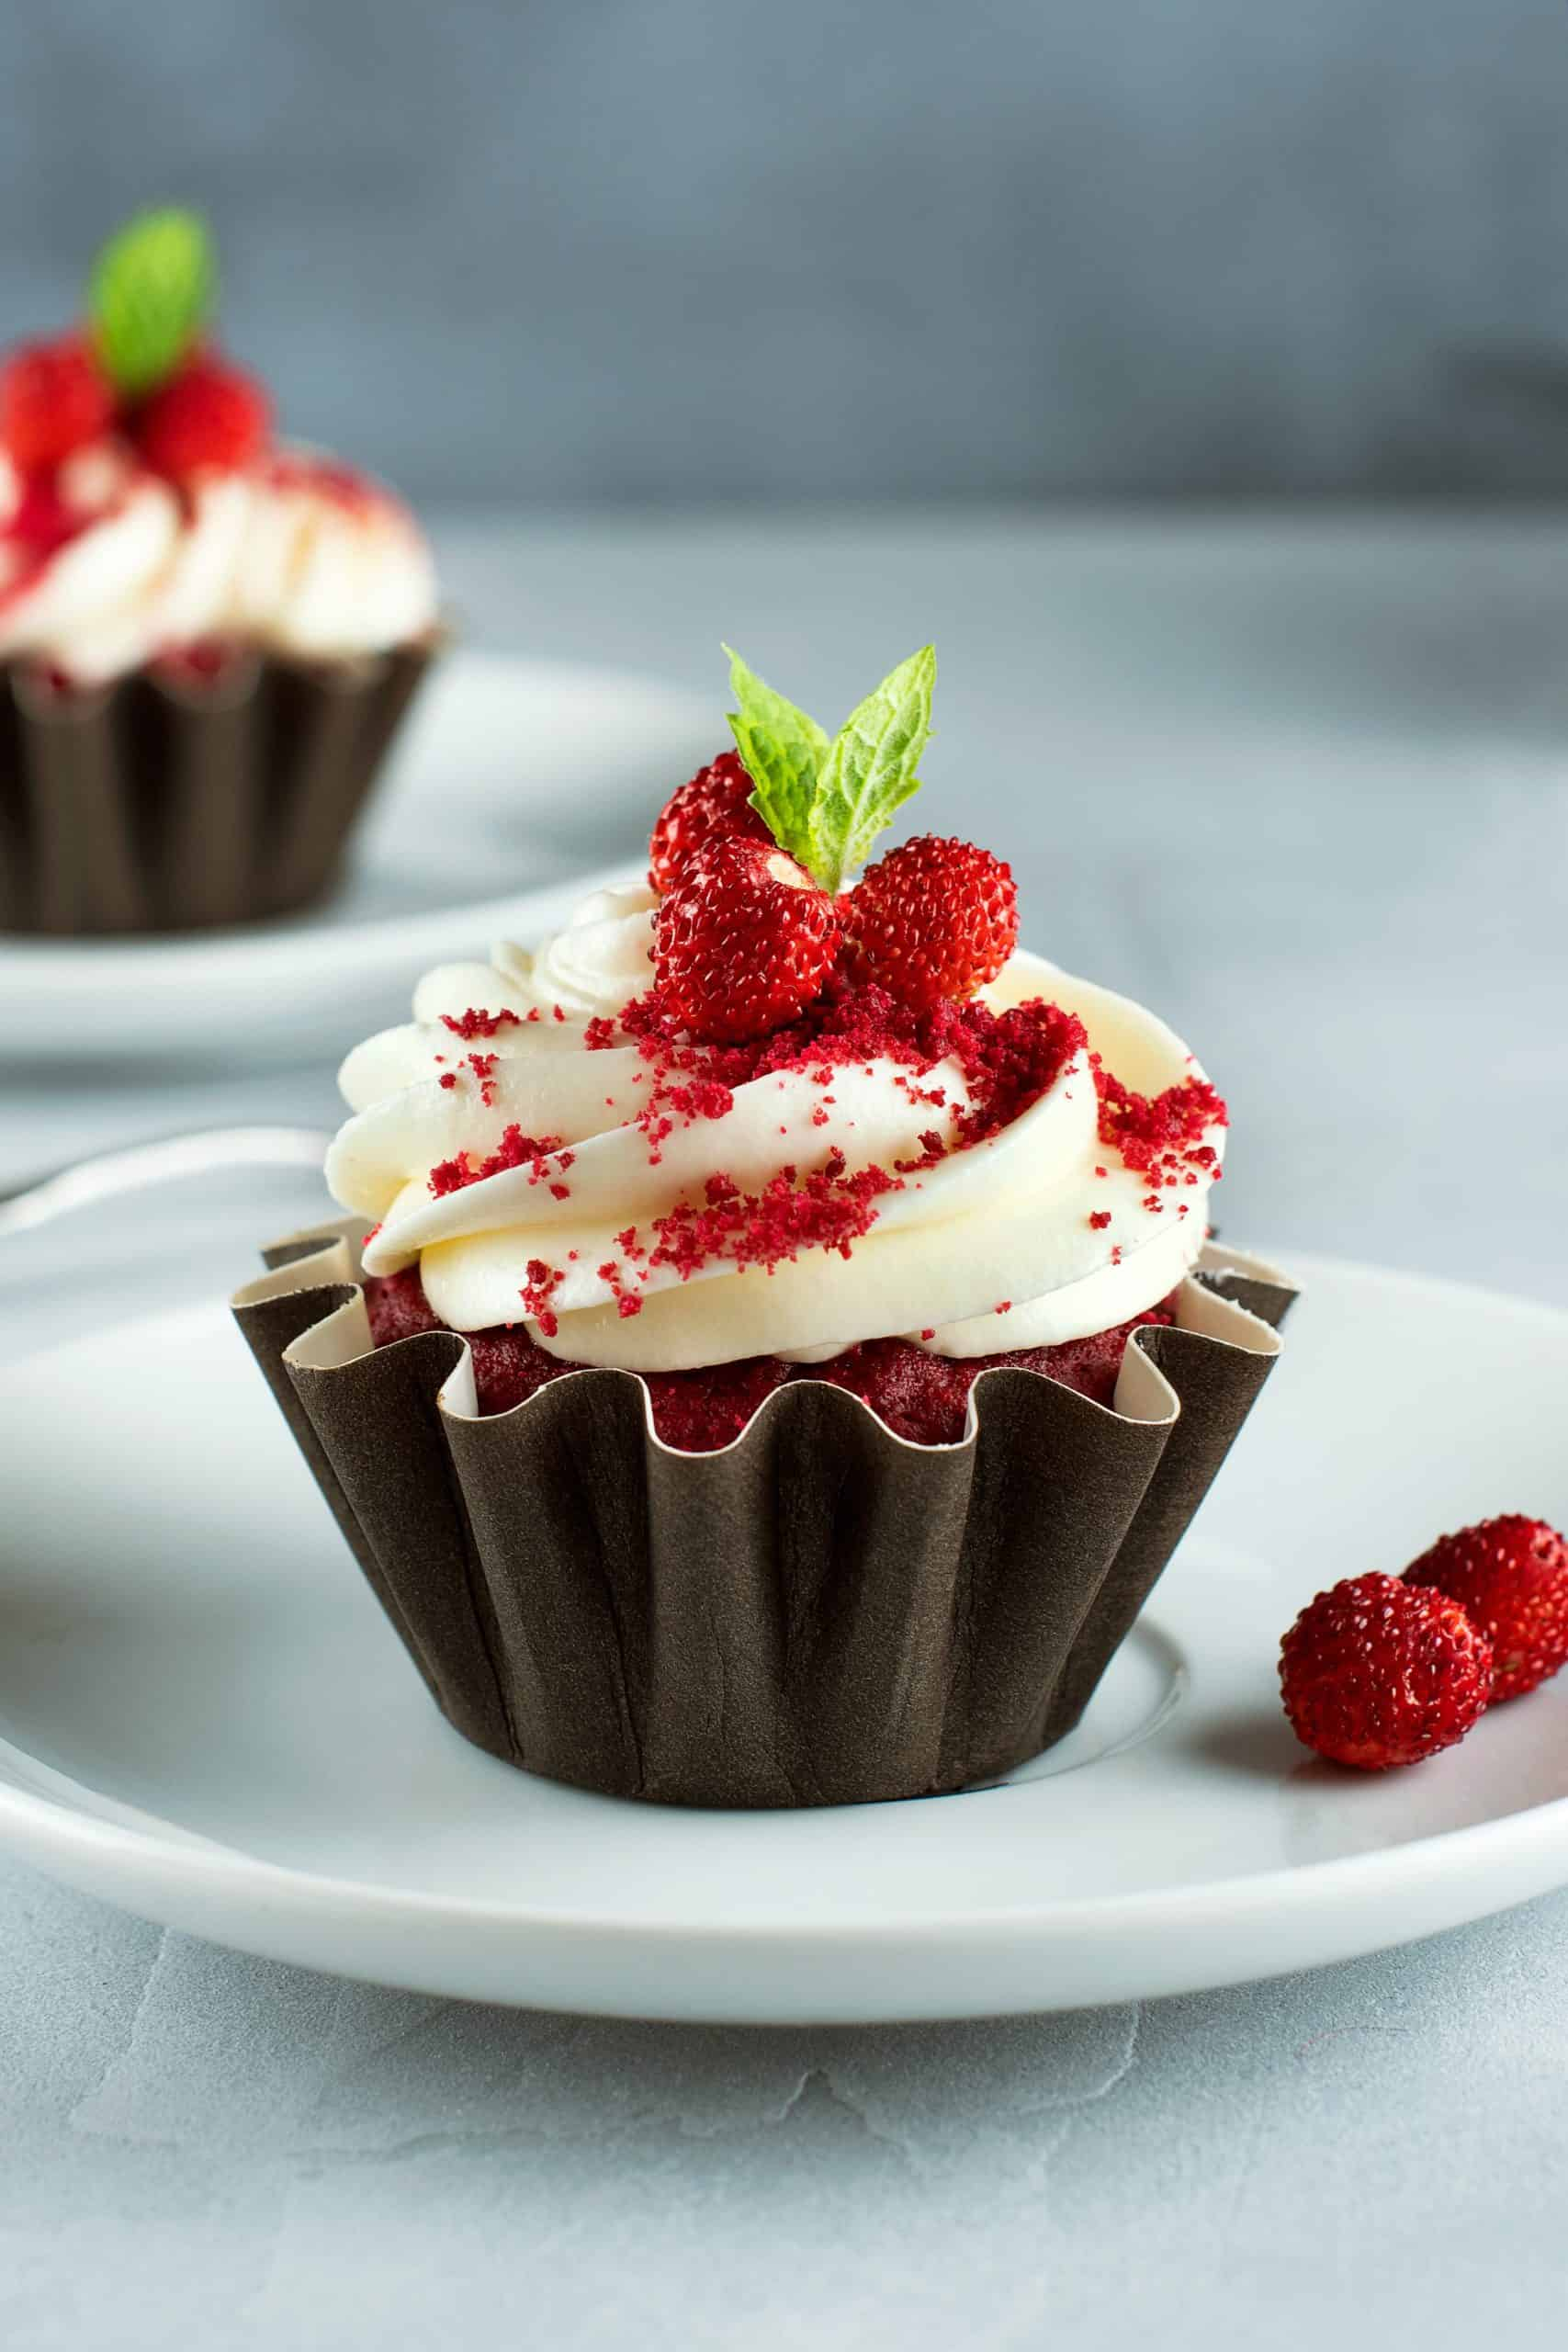 Cupcake Molds: 4 Sets Perfect For Your Choice